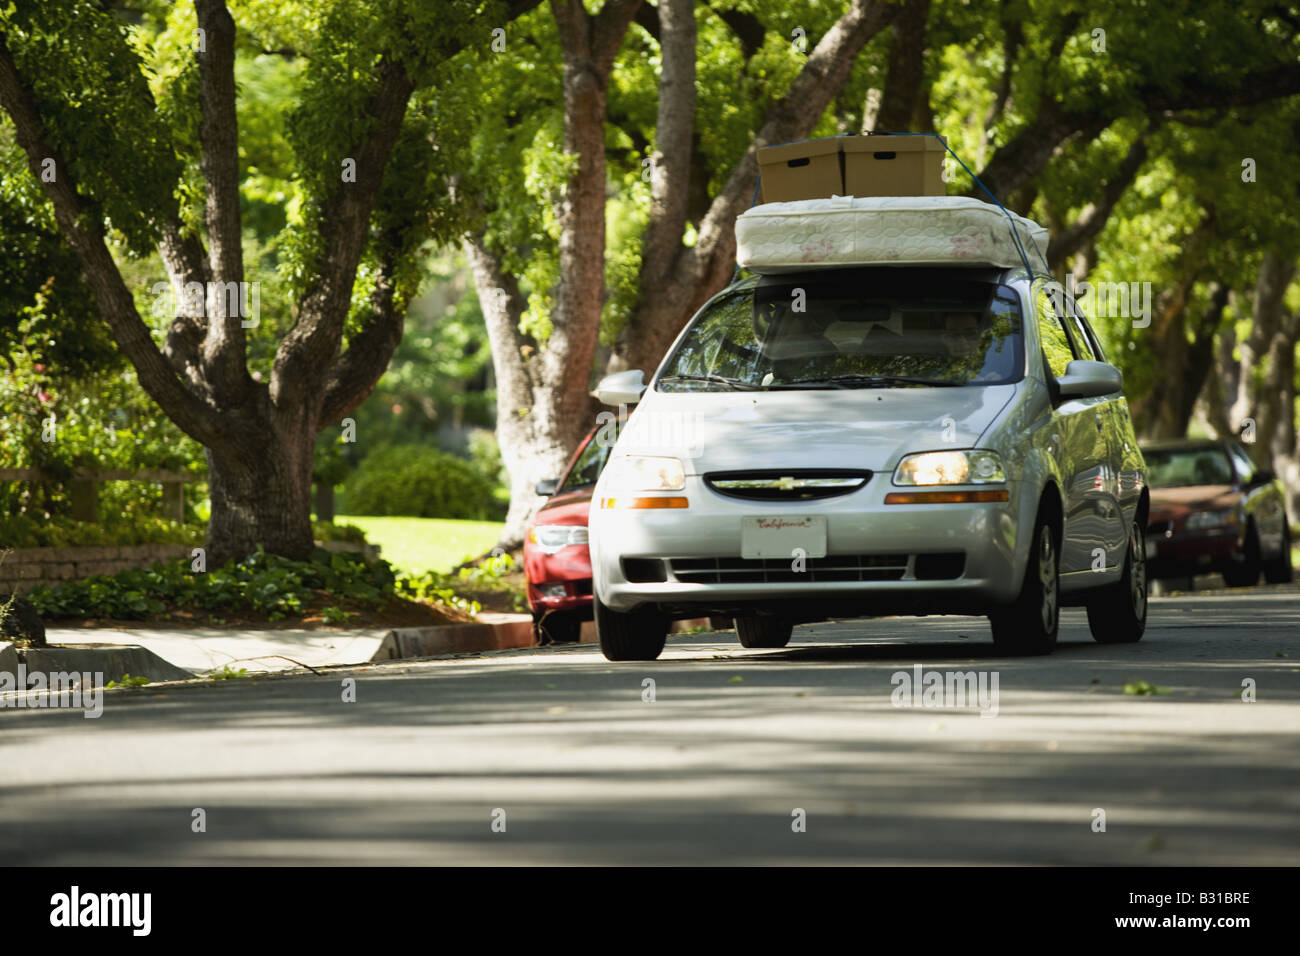 Chevy Aveo driving down tree lined street with mattress and boxes on roof Stock Photo